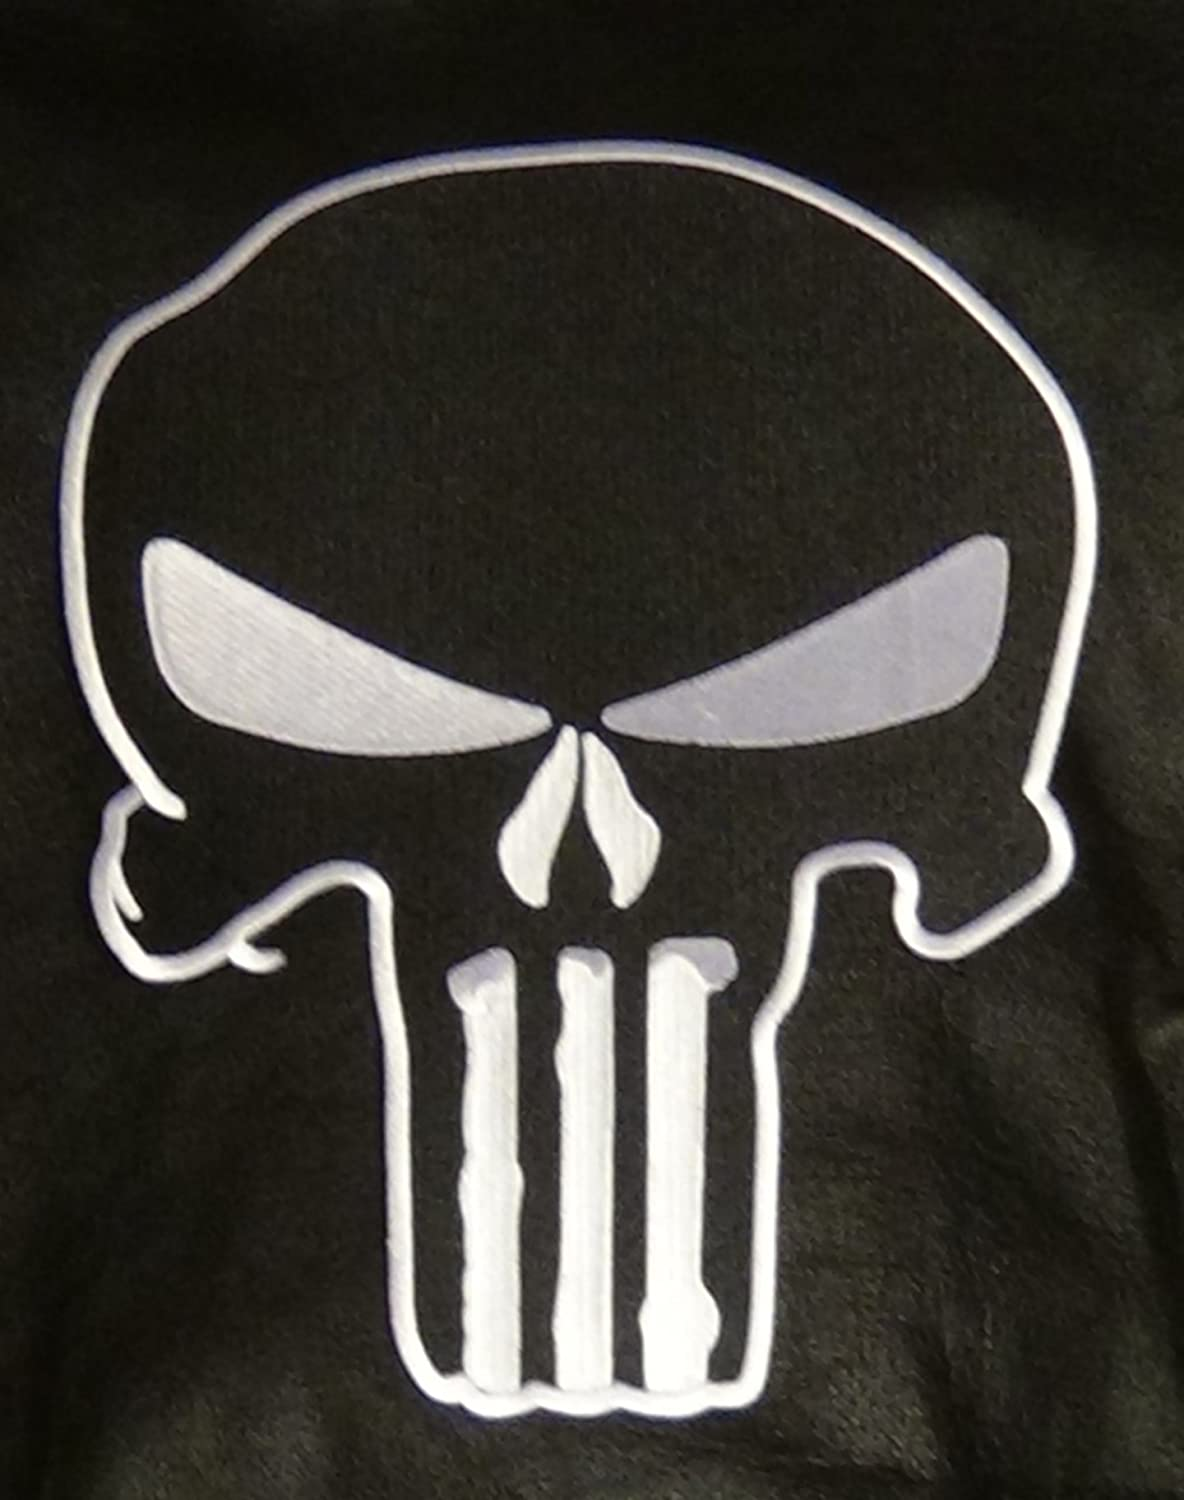 Large Biker Jacket Patch Punisher Skull Patch Iron or Sew on 100% Embroidered Black/white Fan Shop